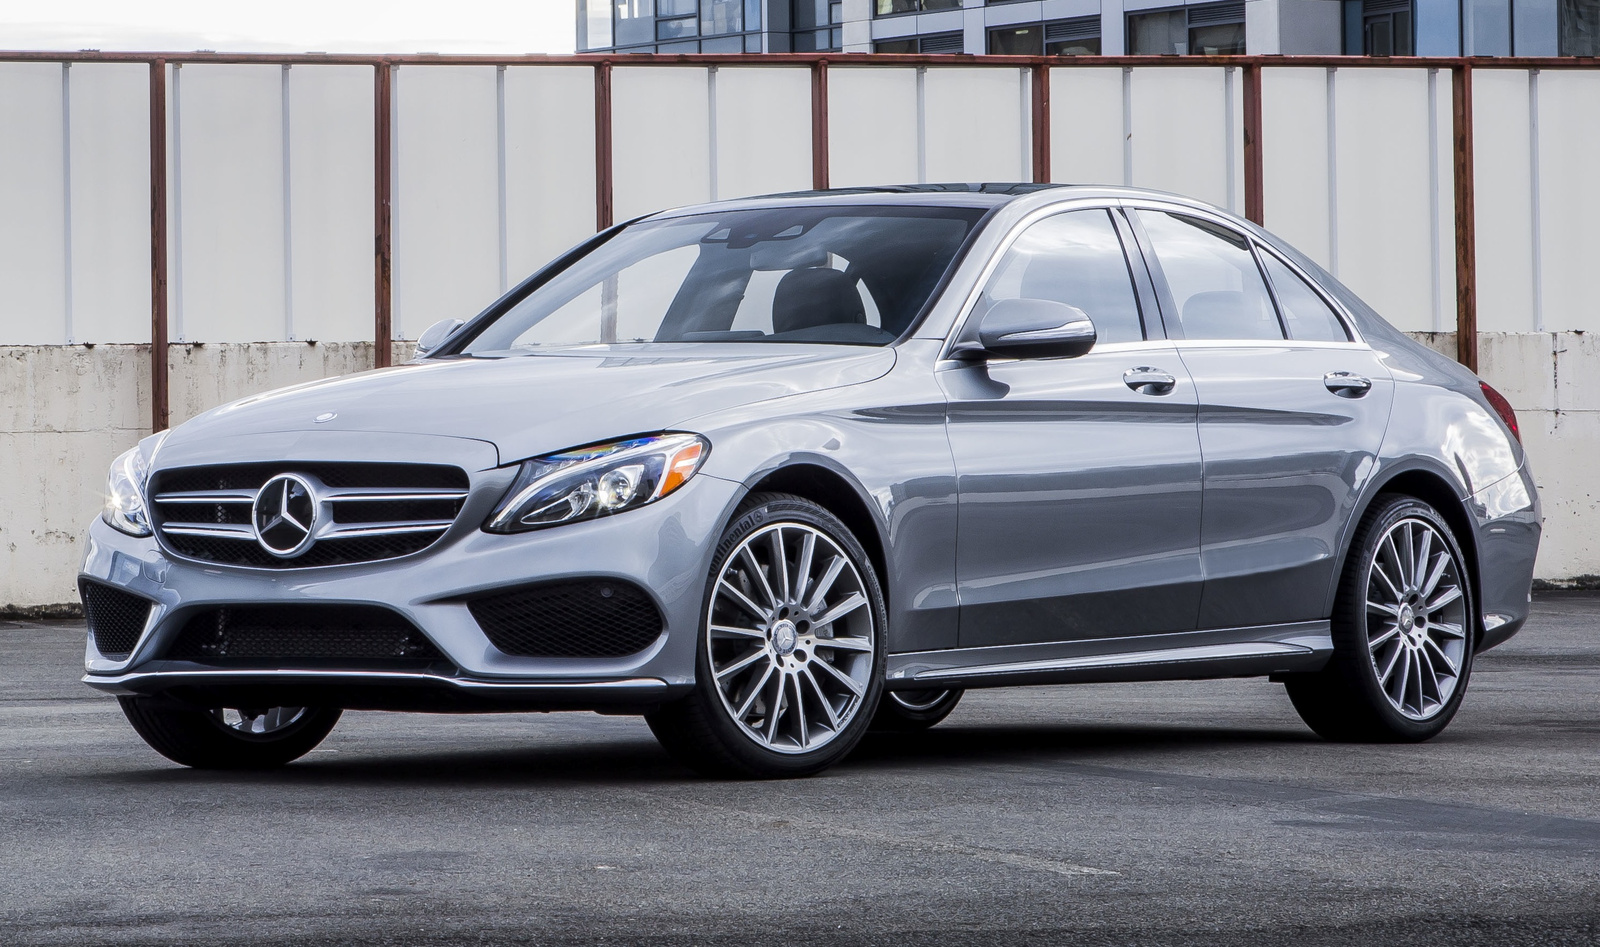 2015 mercedes benz c class review cargurus for Mercedes benz c300 reviews